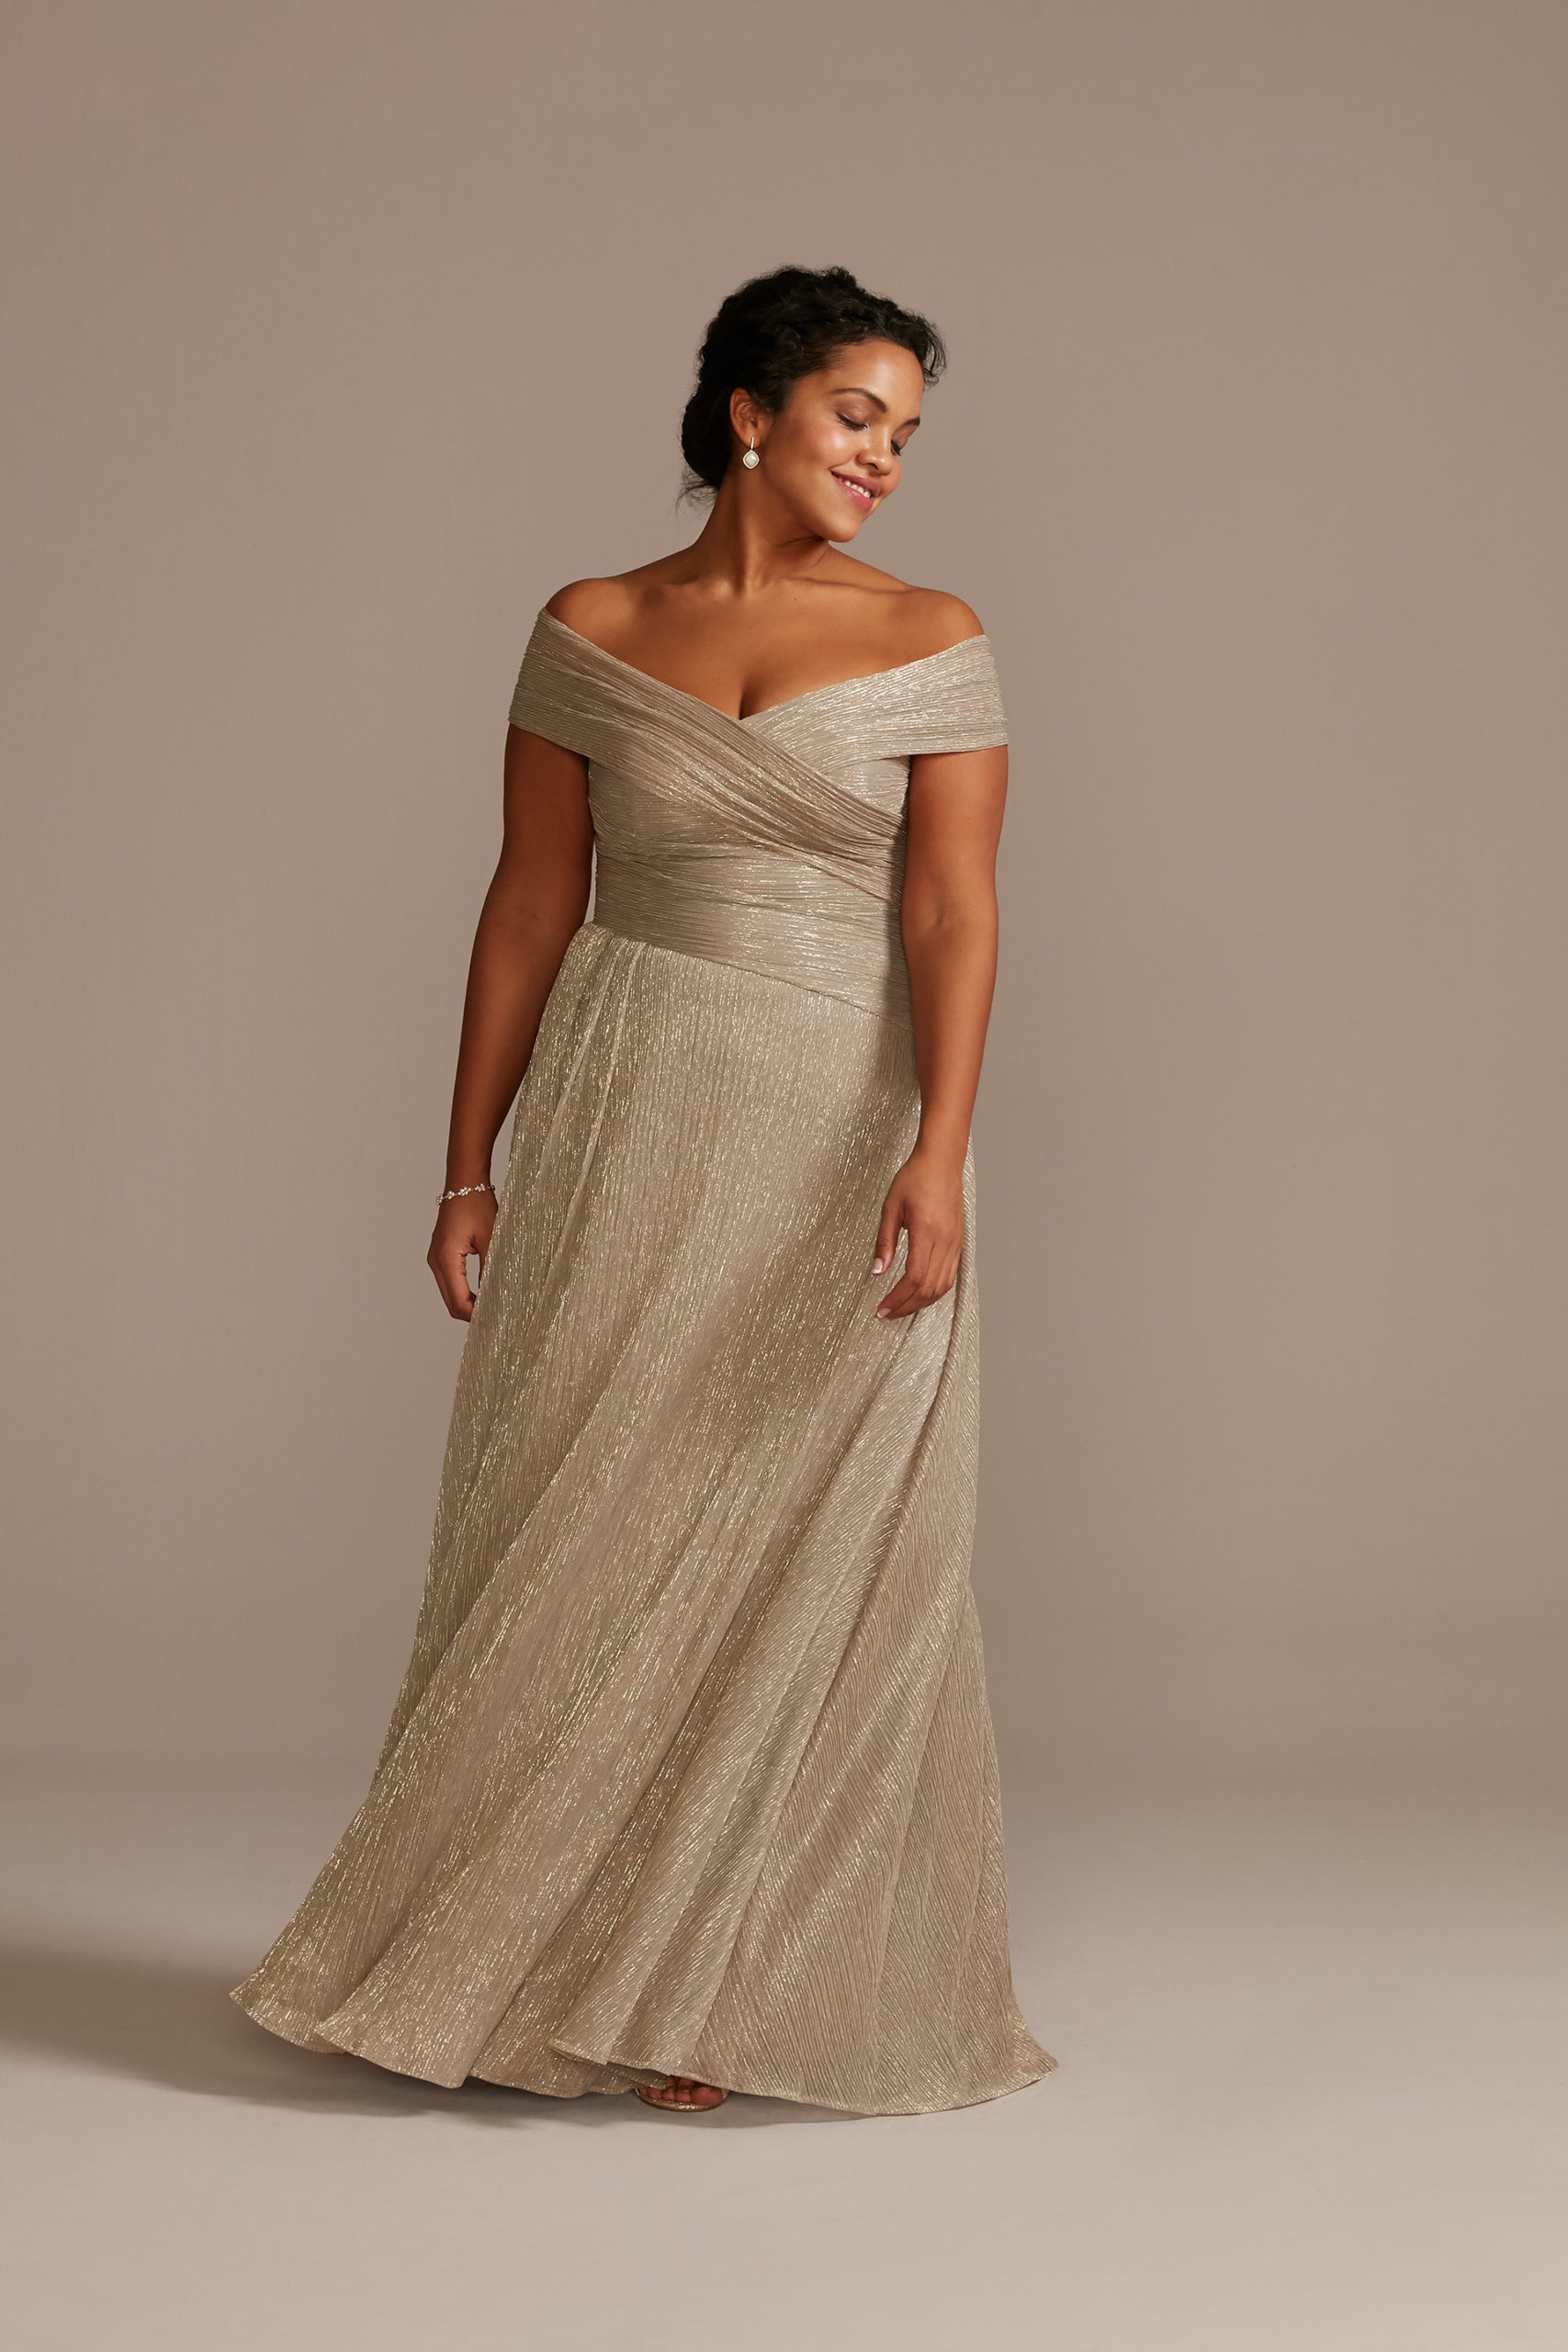 model wearing an off the shoulder, gold metallic a-line mother of the bride dress